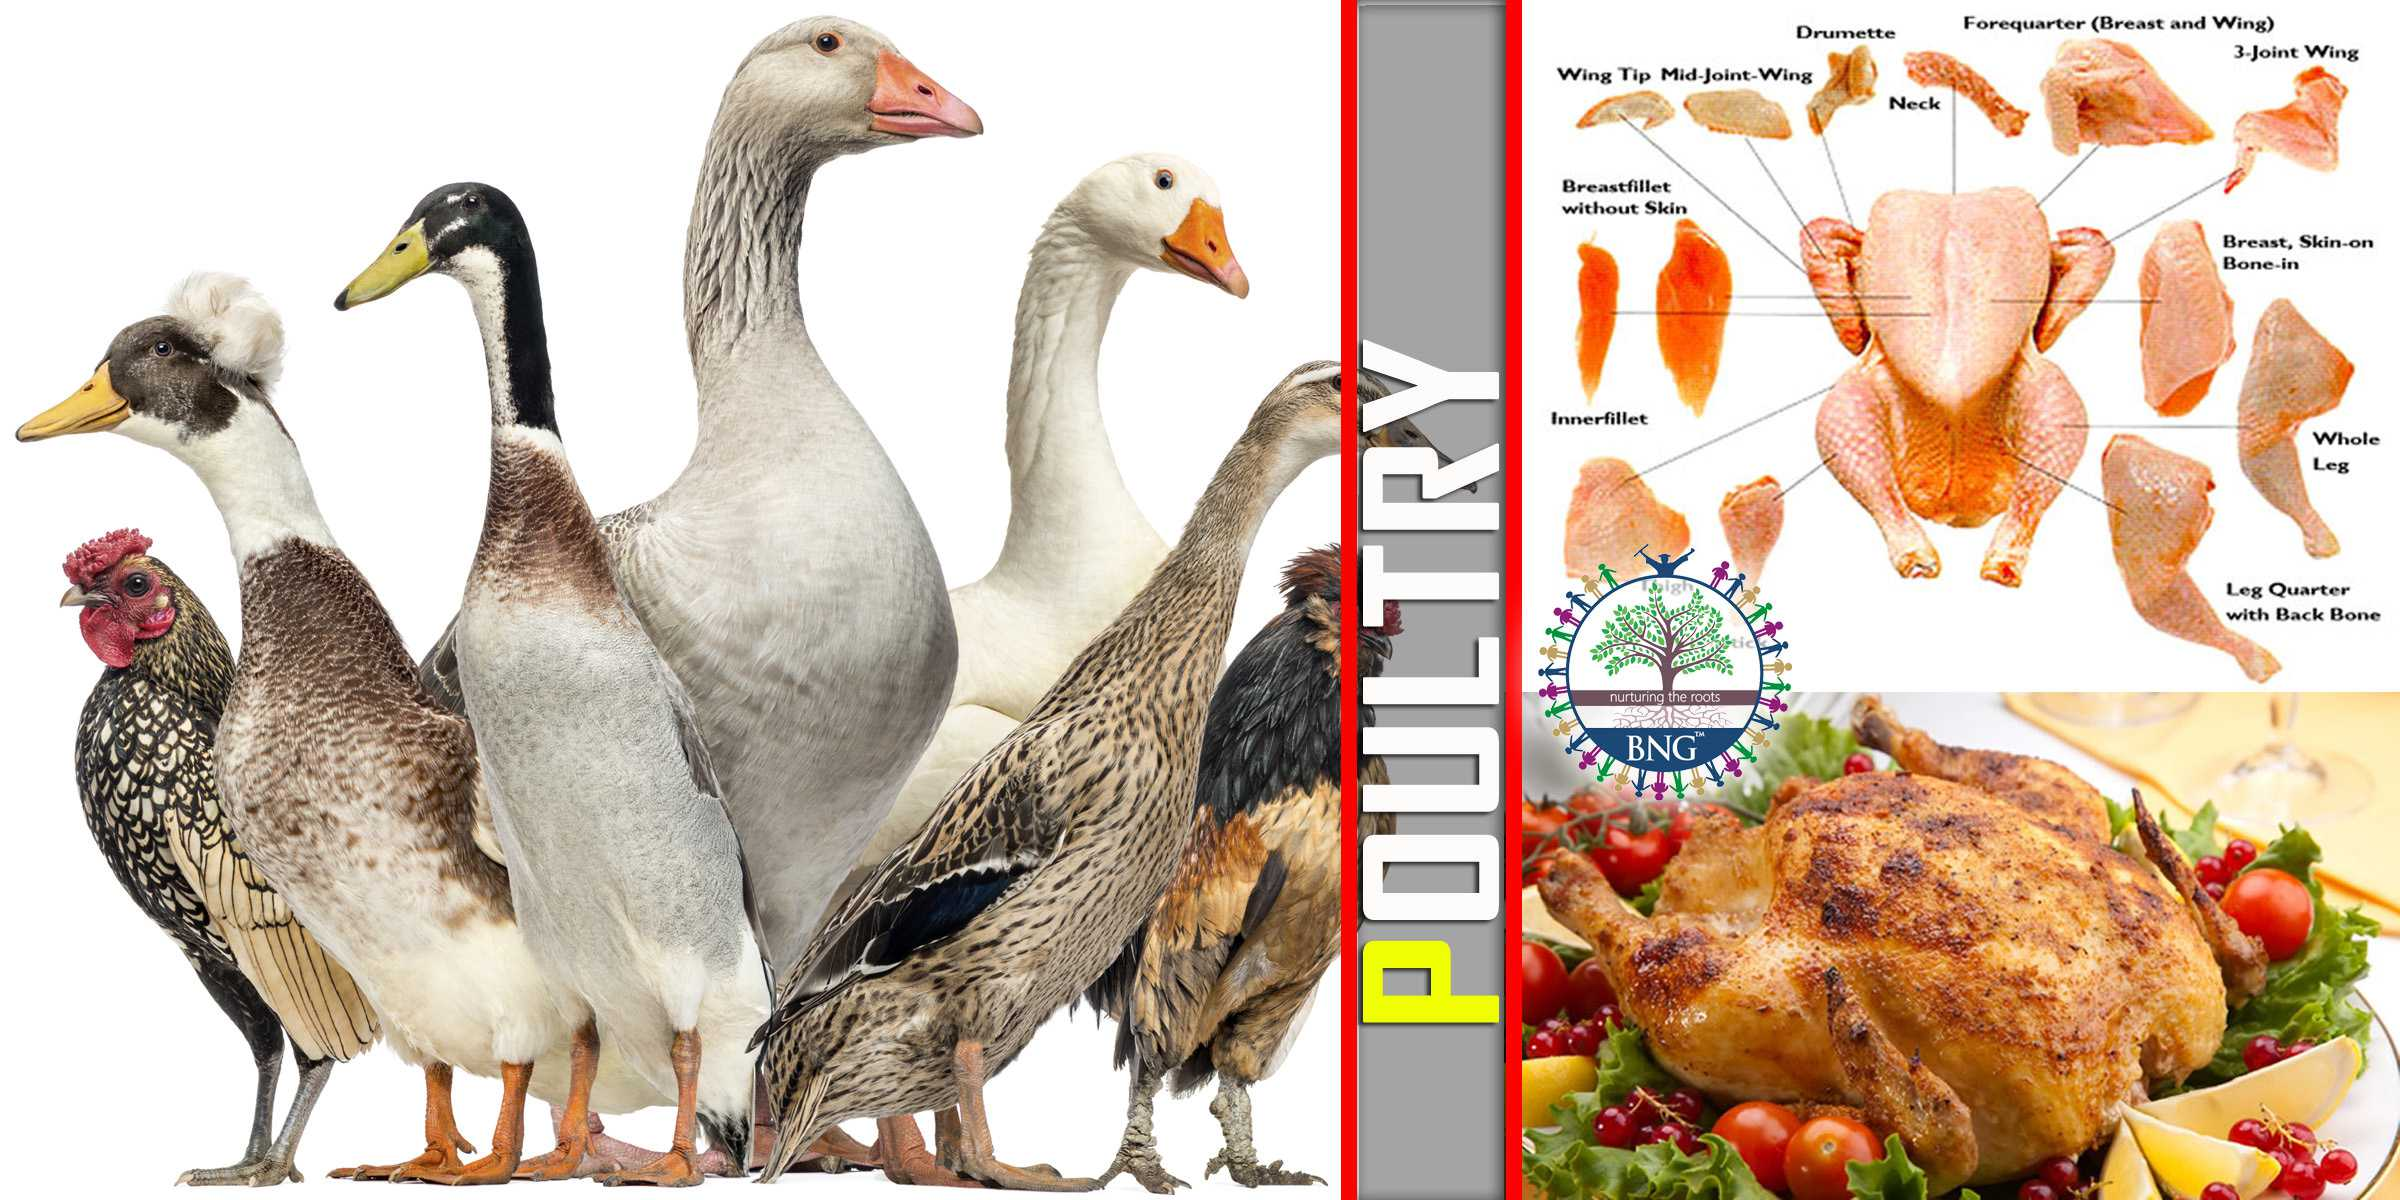 poultry types cooking bng